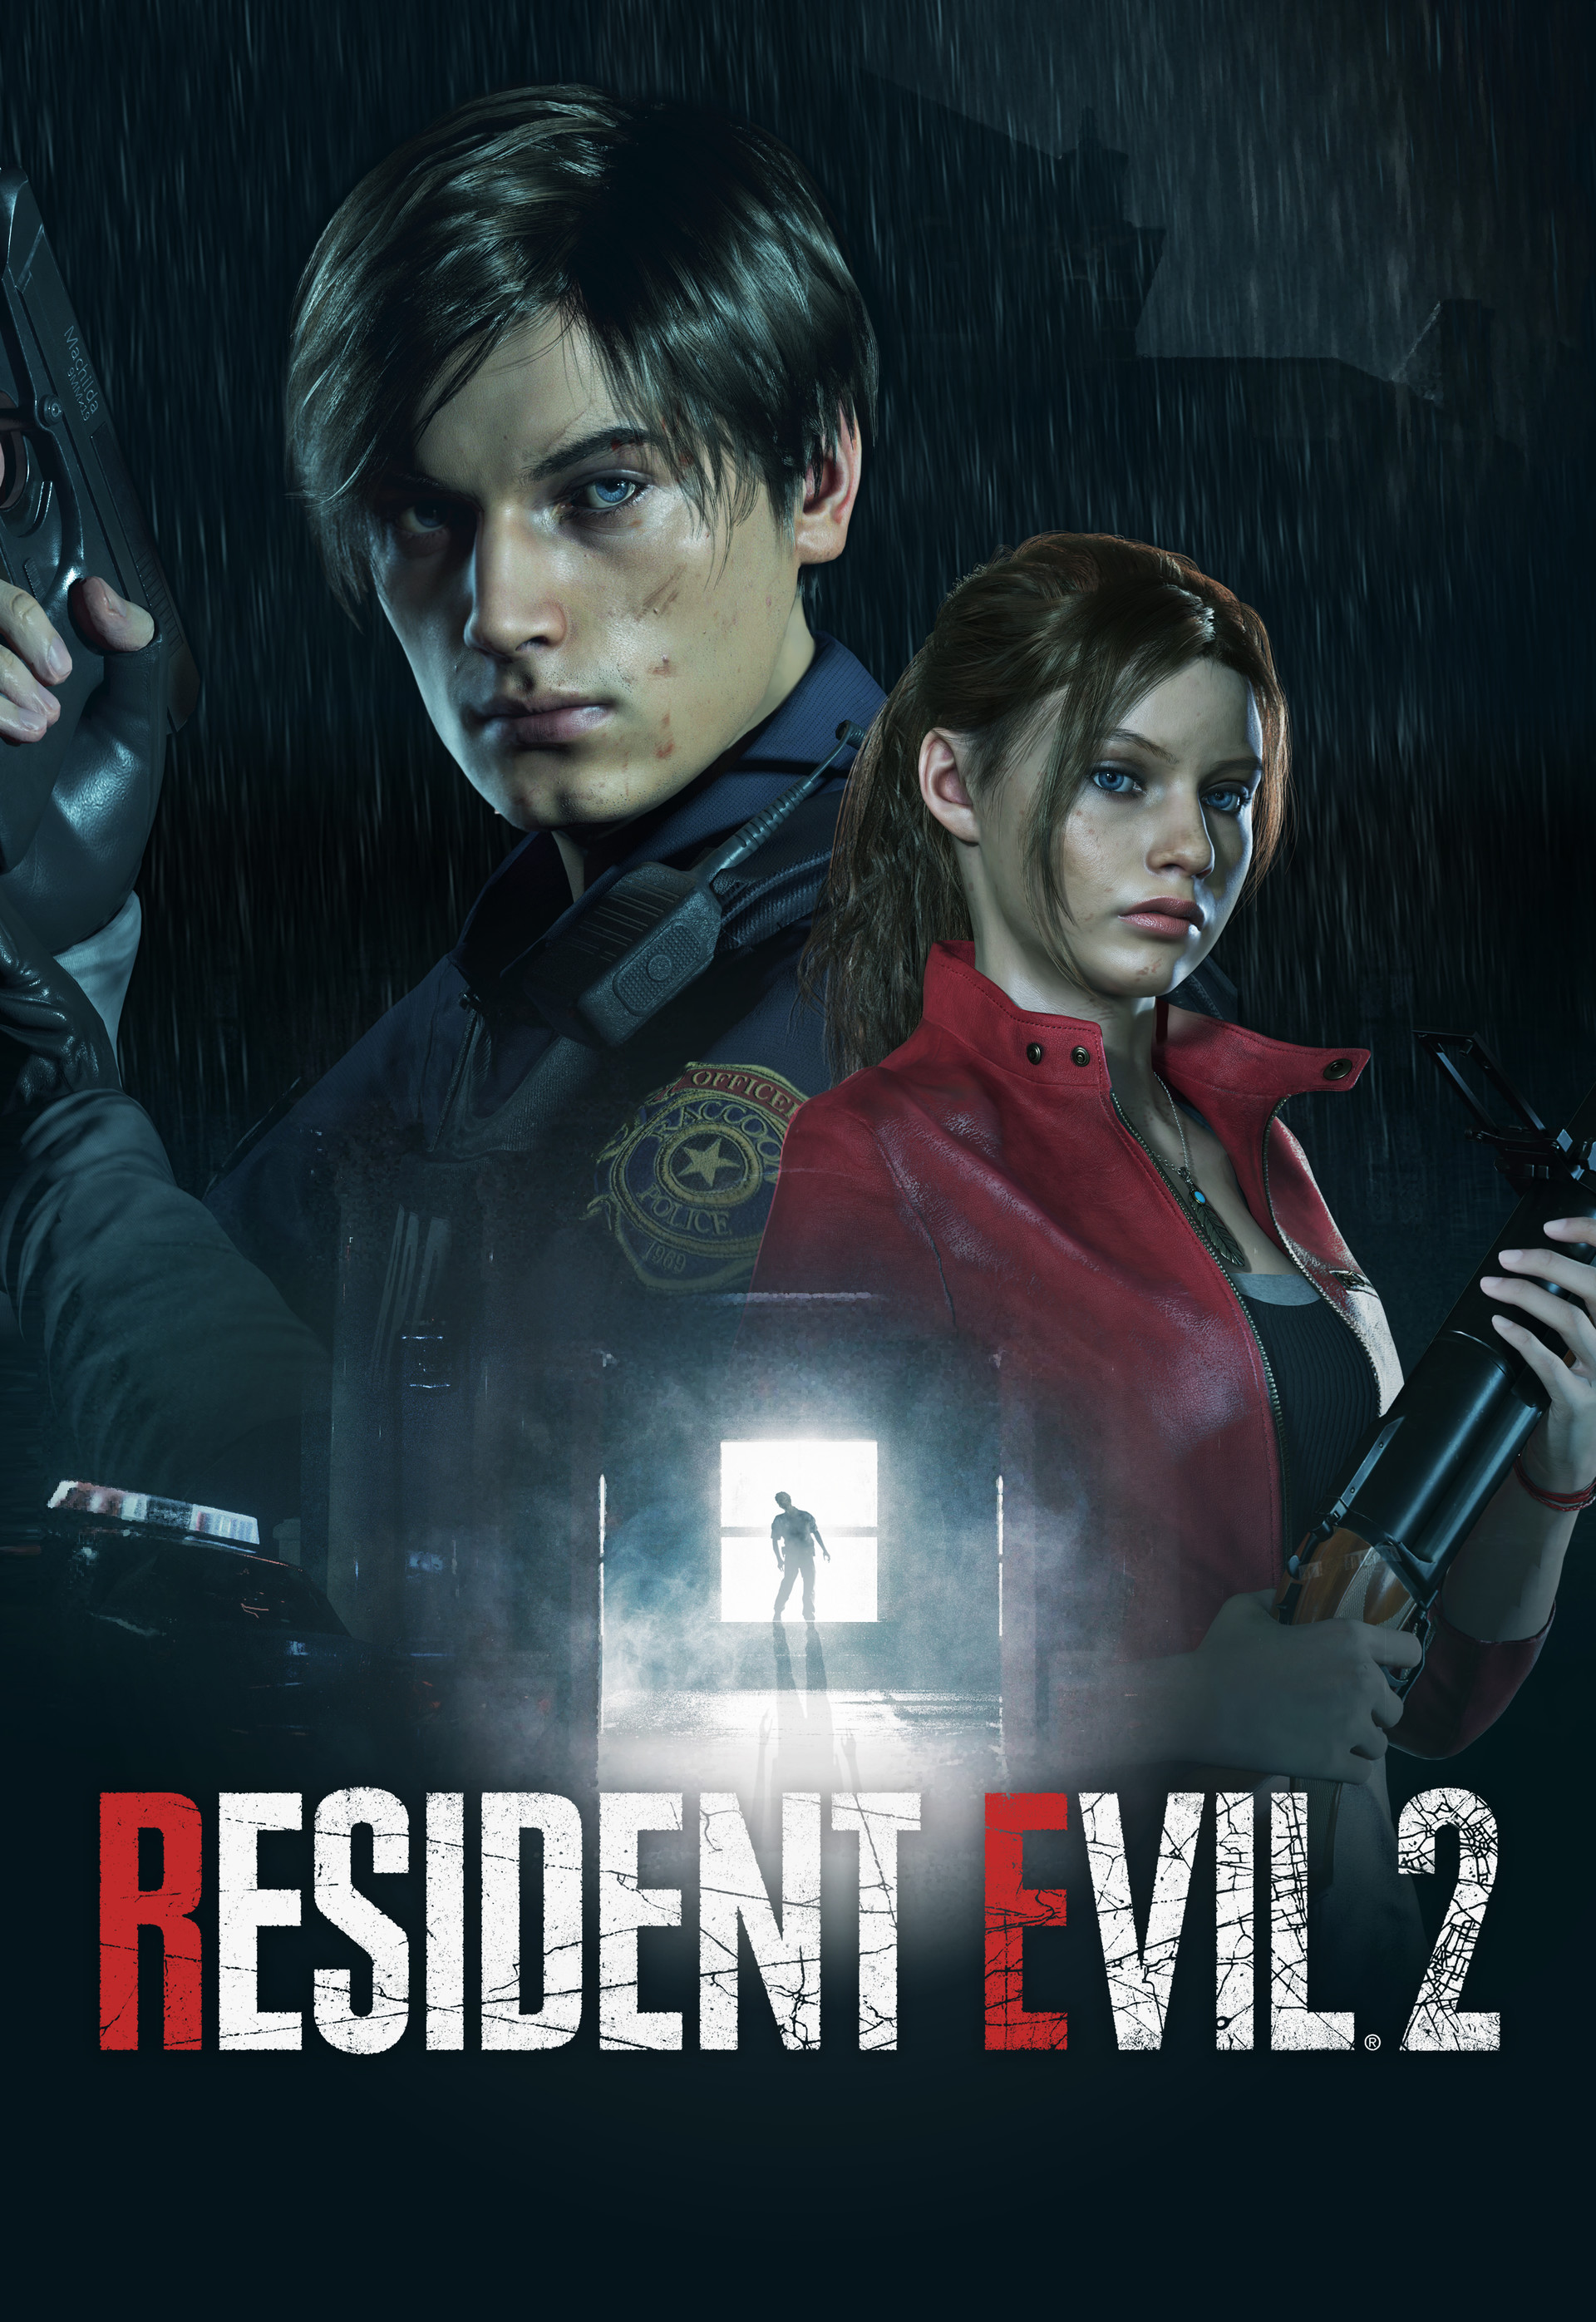 Resident evil 2: dual shock edition ps1 iso download.